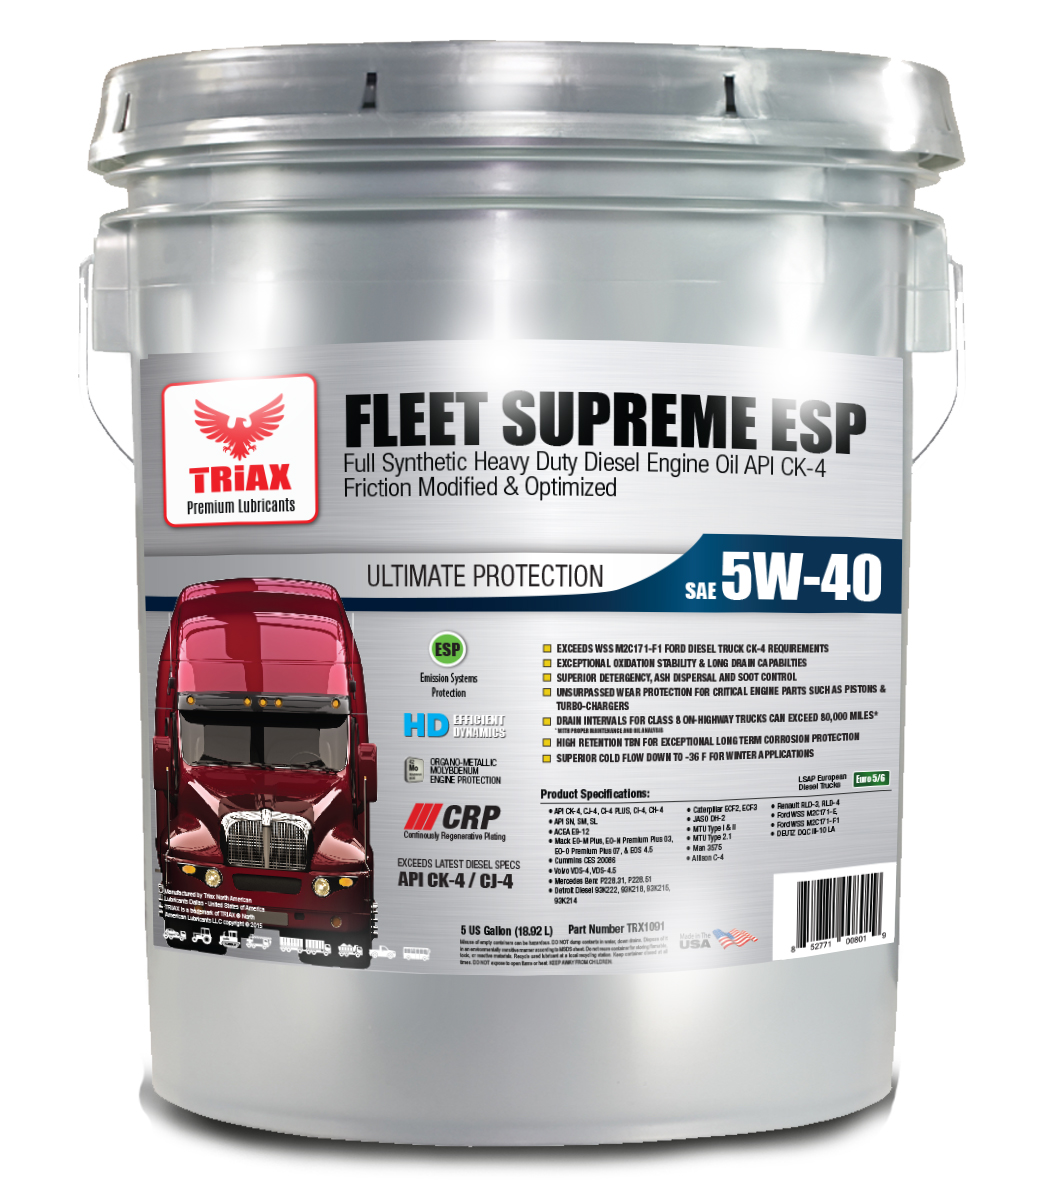 TRIAX Fleet Supreme 5W-40 FULL SYNTHETIC - CK-4